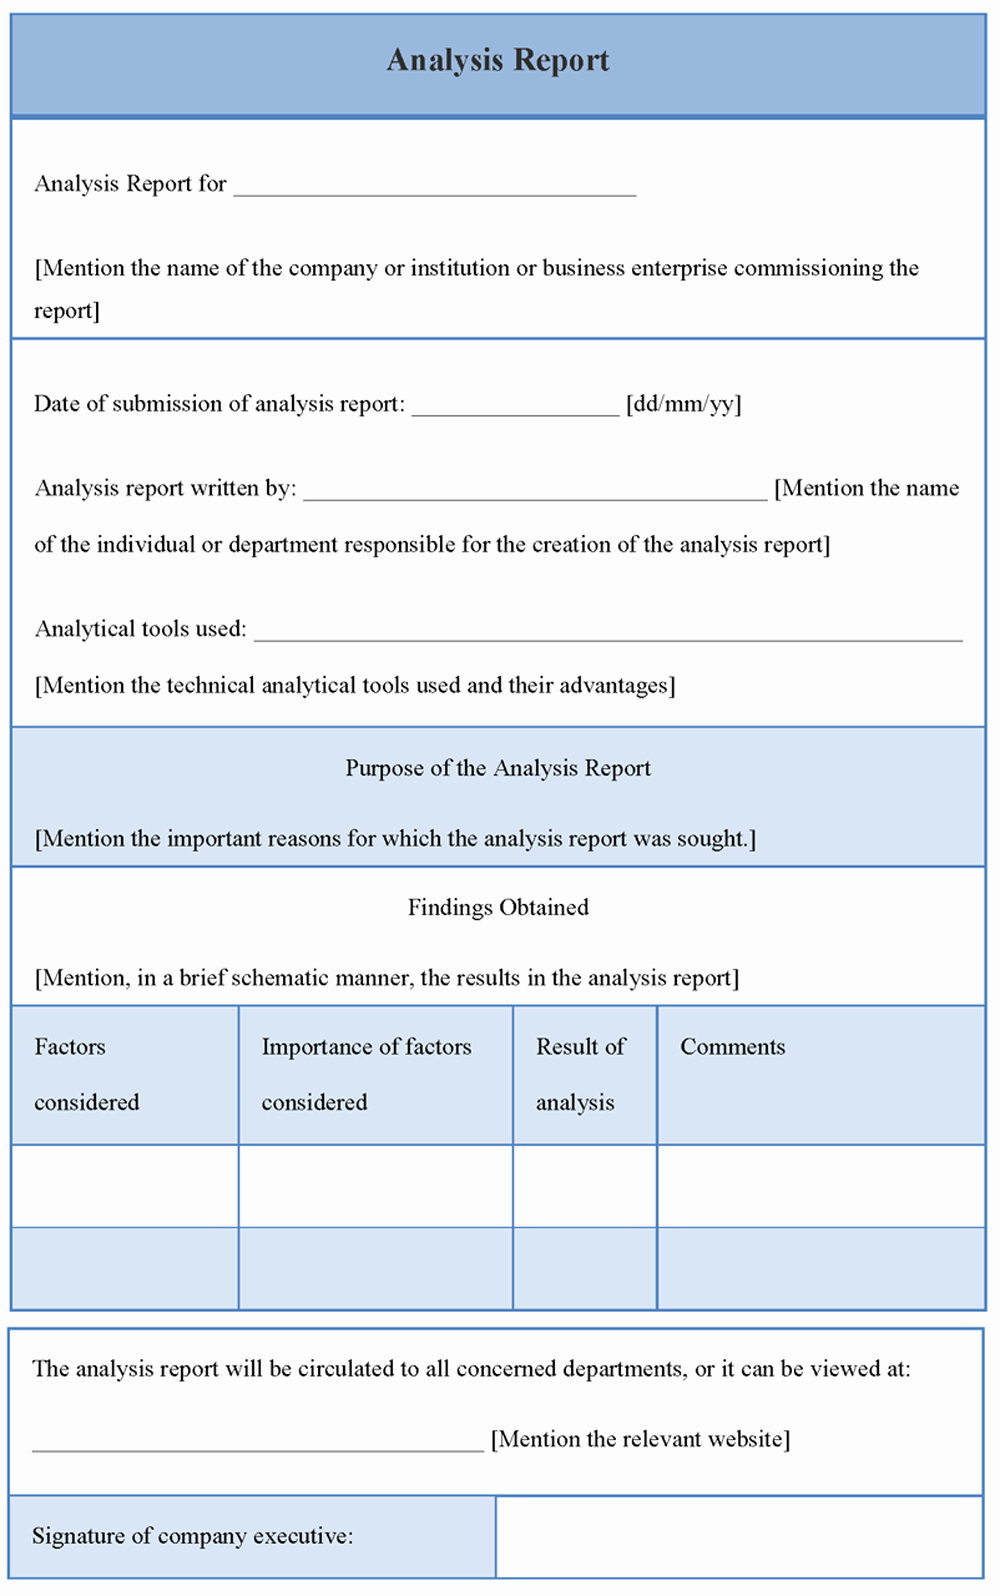 Data Analysis Report Template Inspirational High Quality Blank Data Analysis Report Template and form